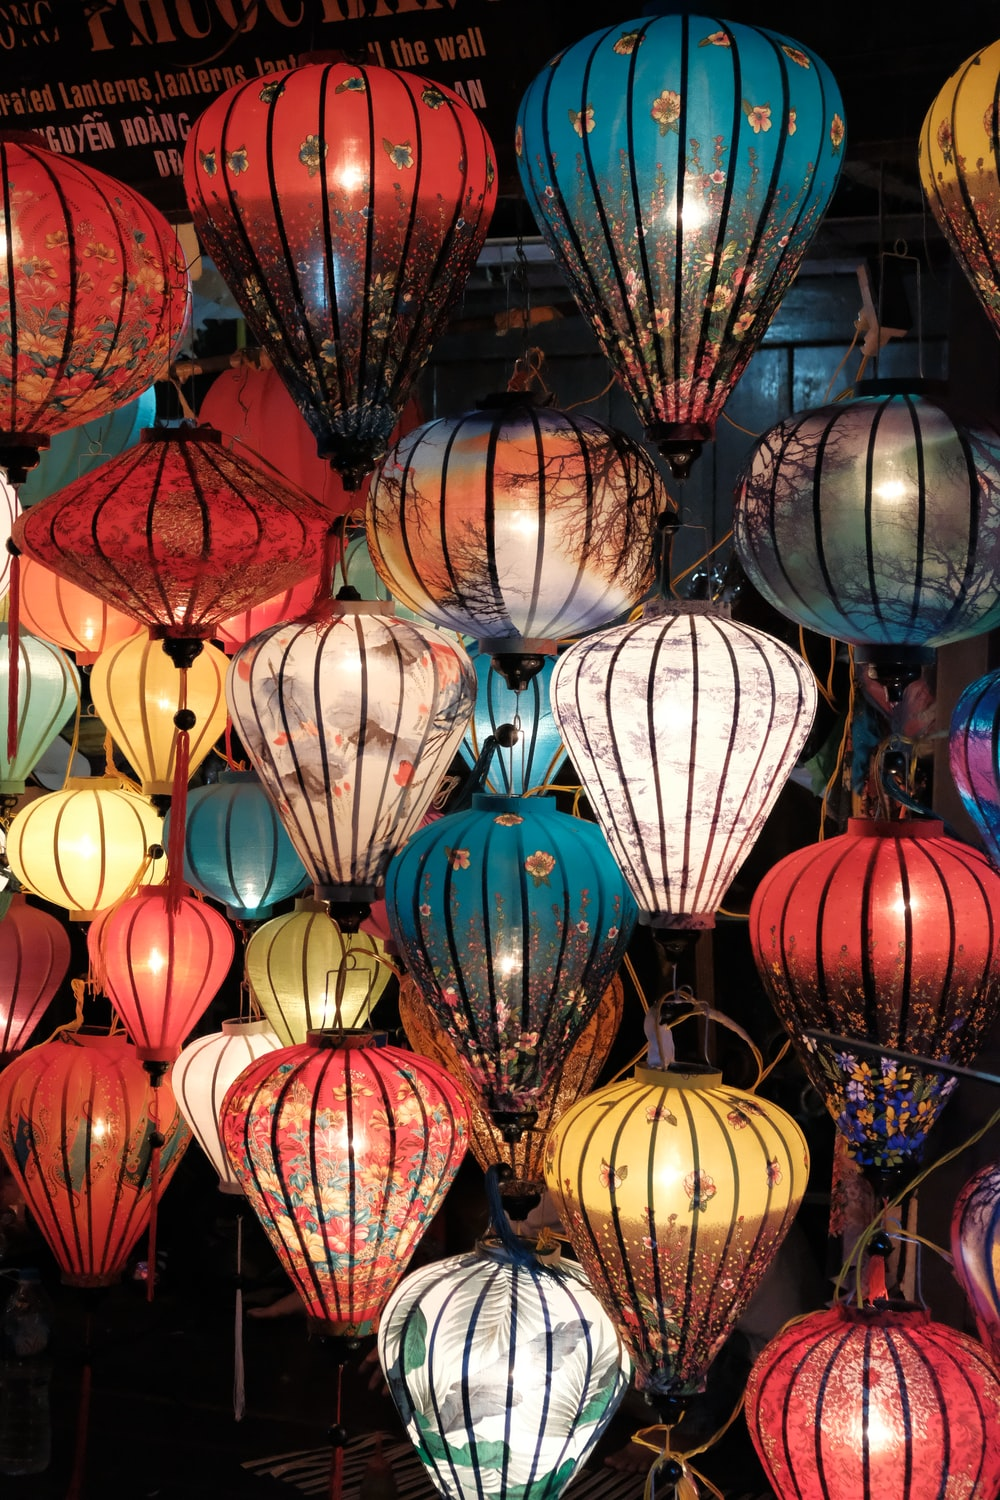 assorted-color lantern lighted in room